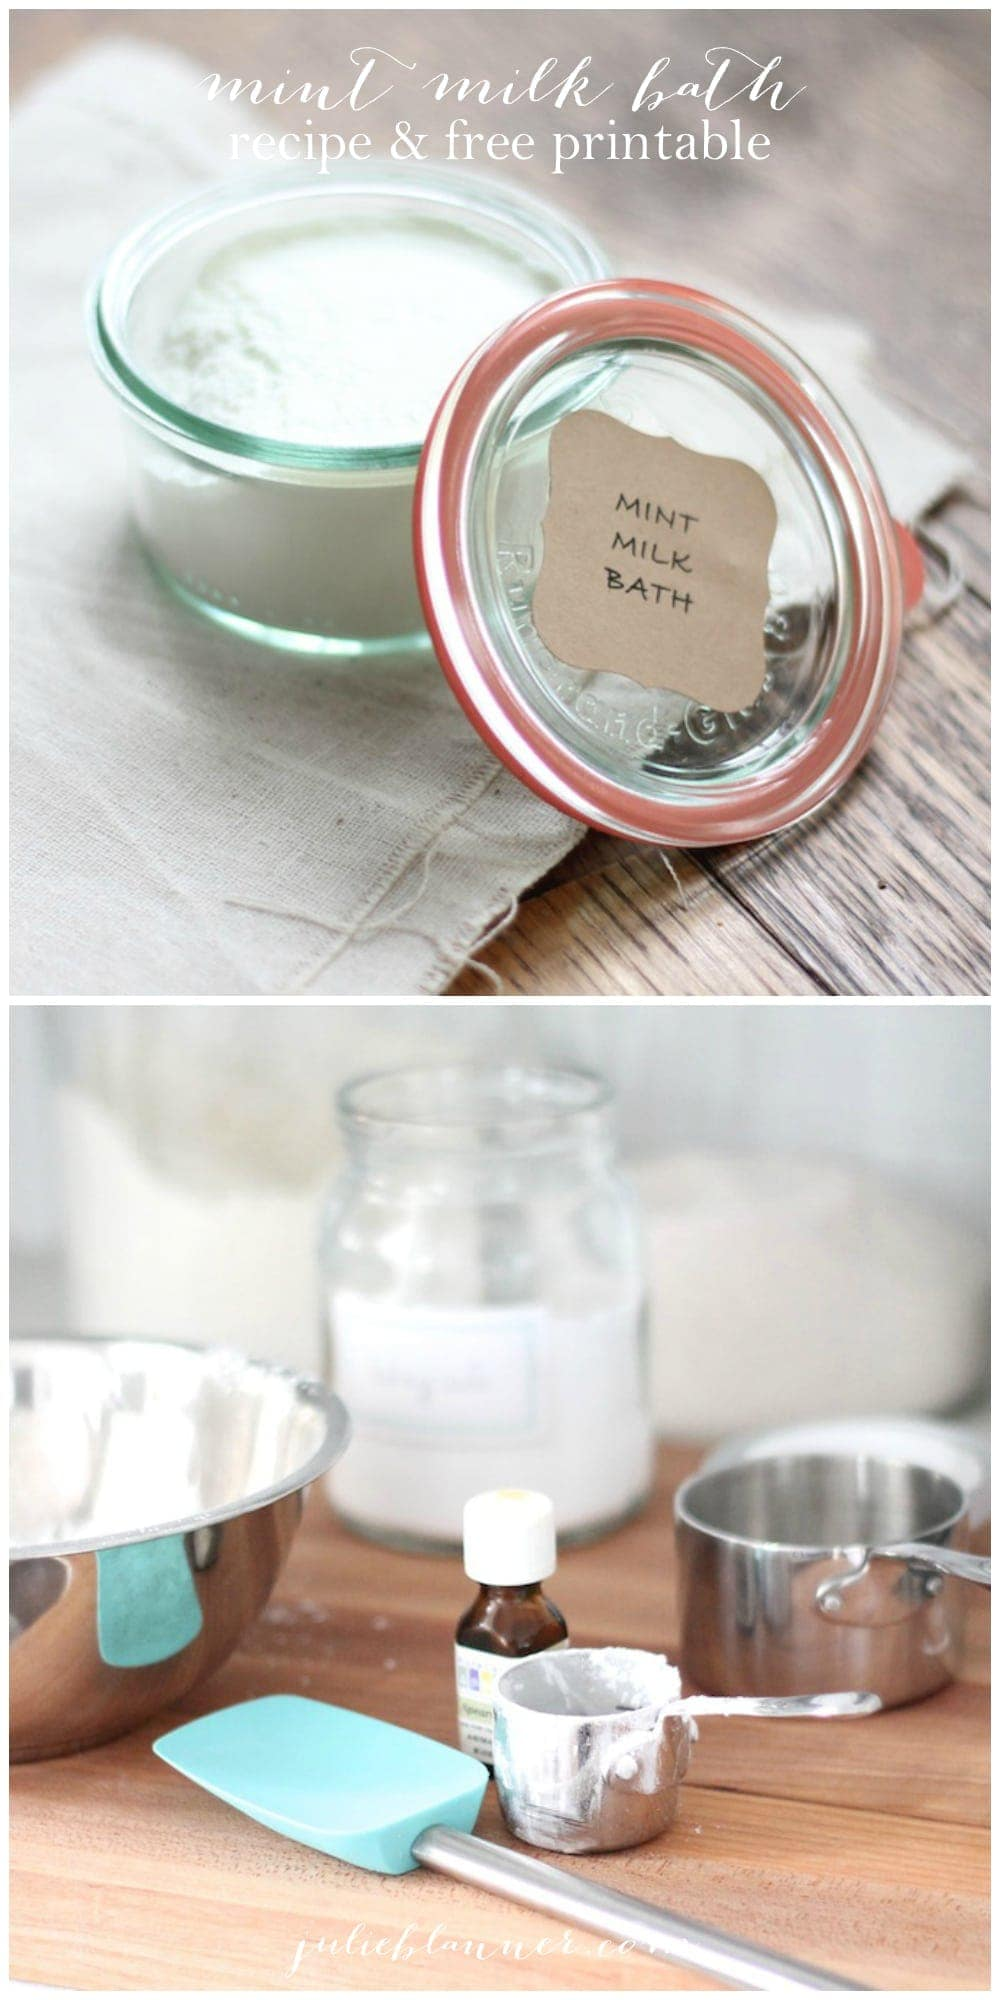 Homemade milk bath recipe & free printable label for gifting